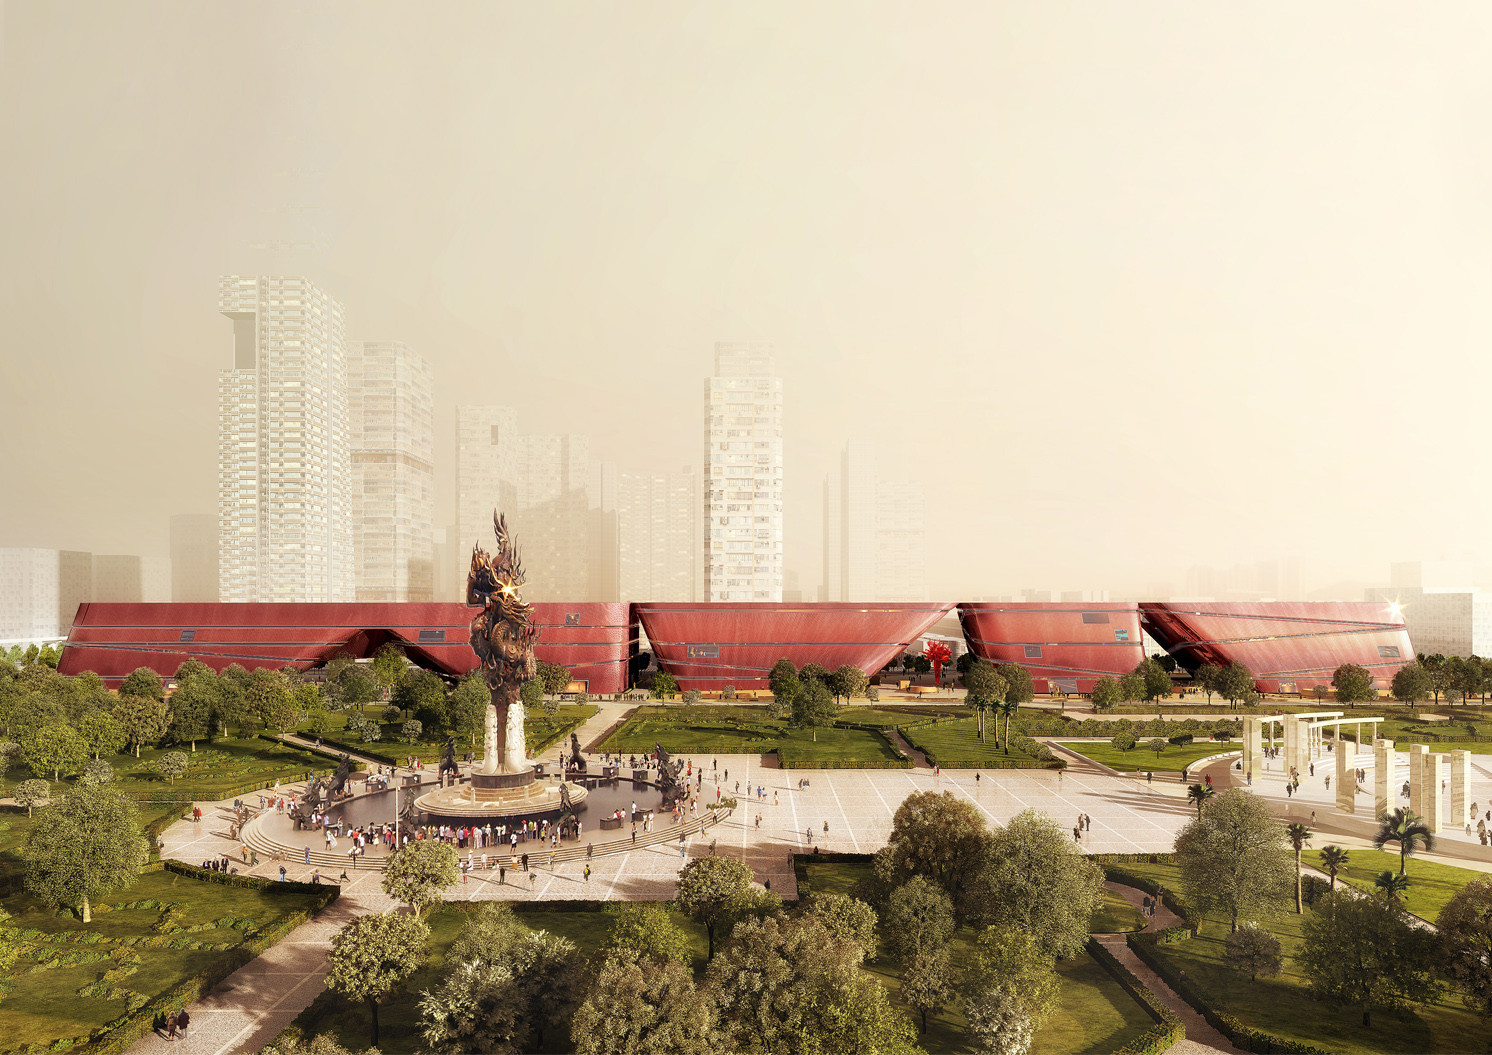 Mecanoo Begins Work on Vast Cultural Centre in Shenzhen, Courtesy of Mecanoo / Christopher Malheiros Architectural Visualization